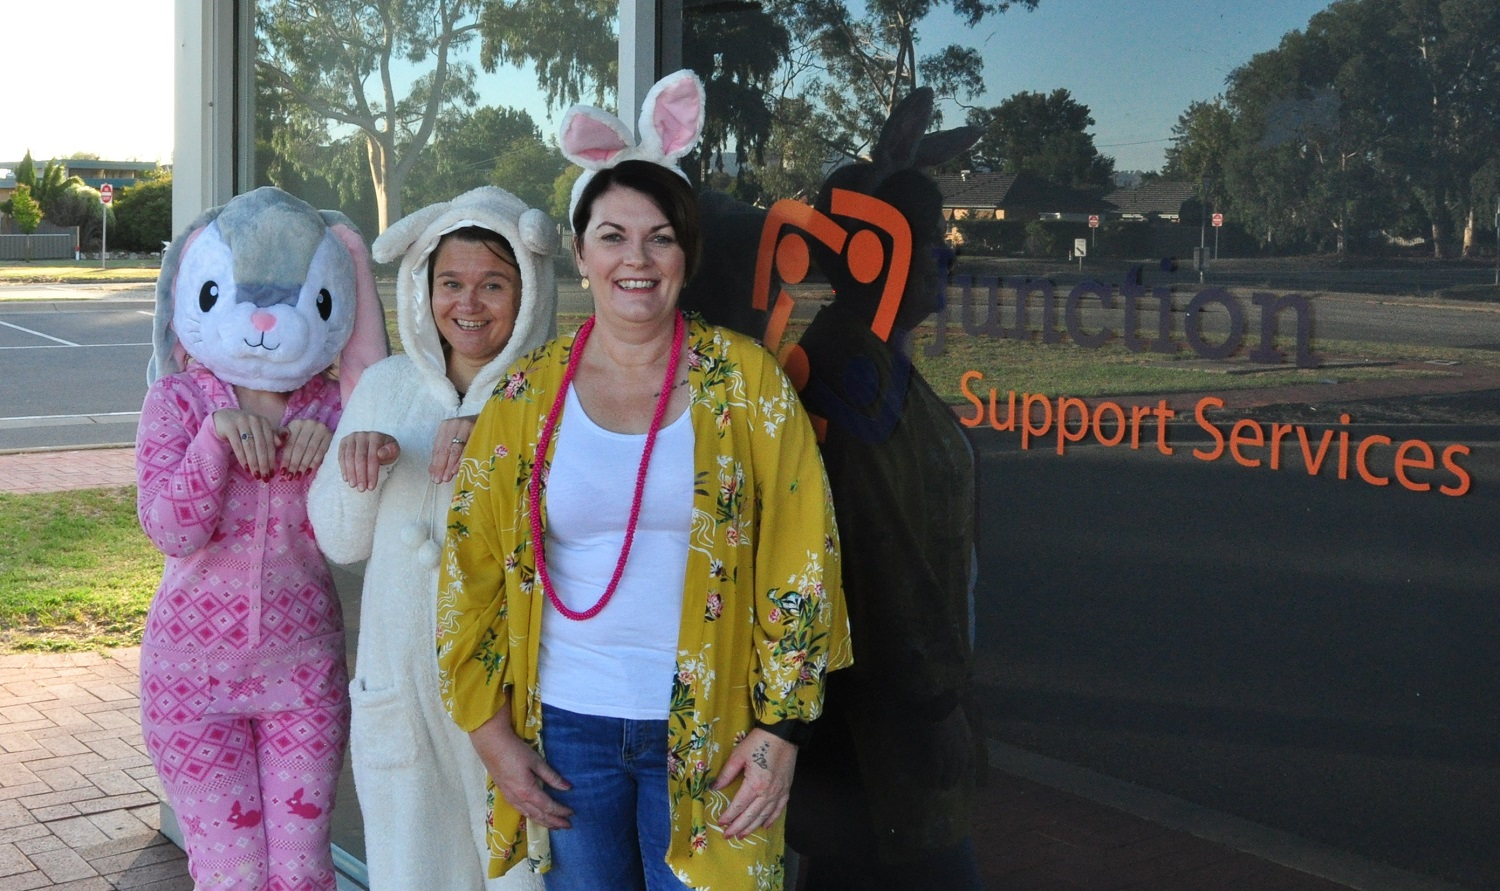 Staff dressed up for Easter